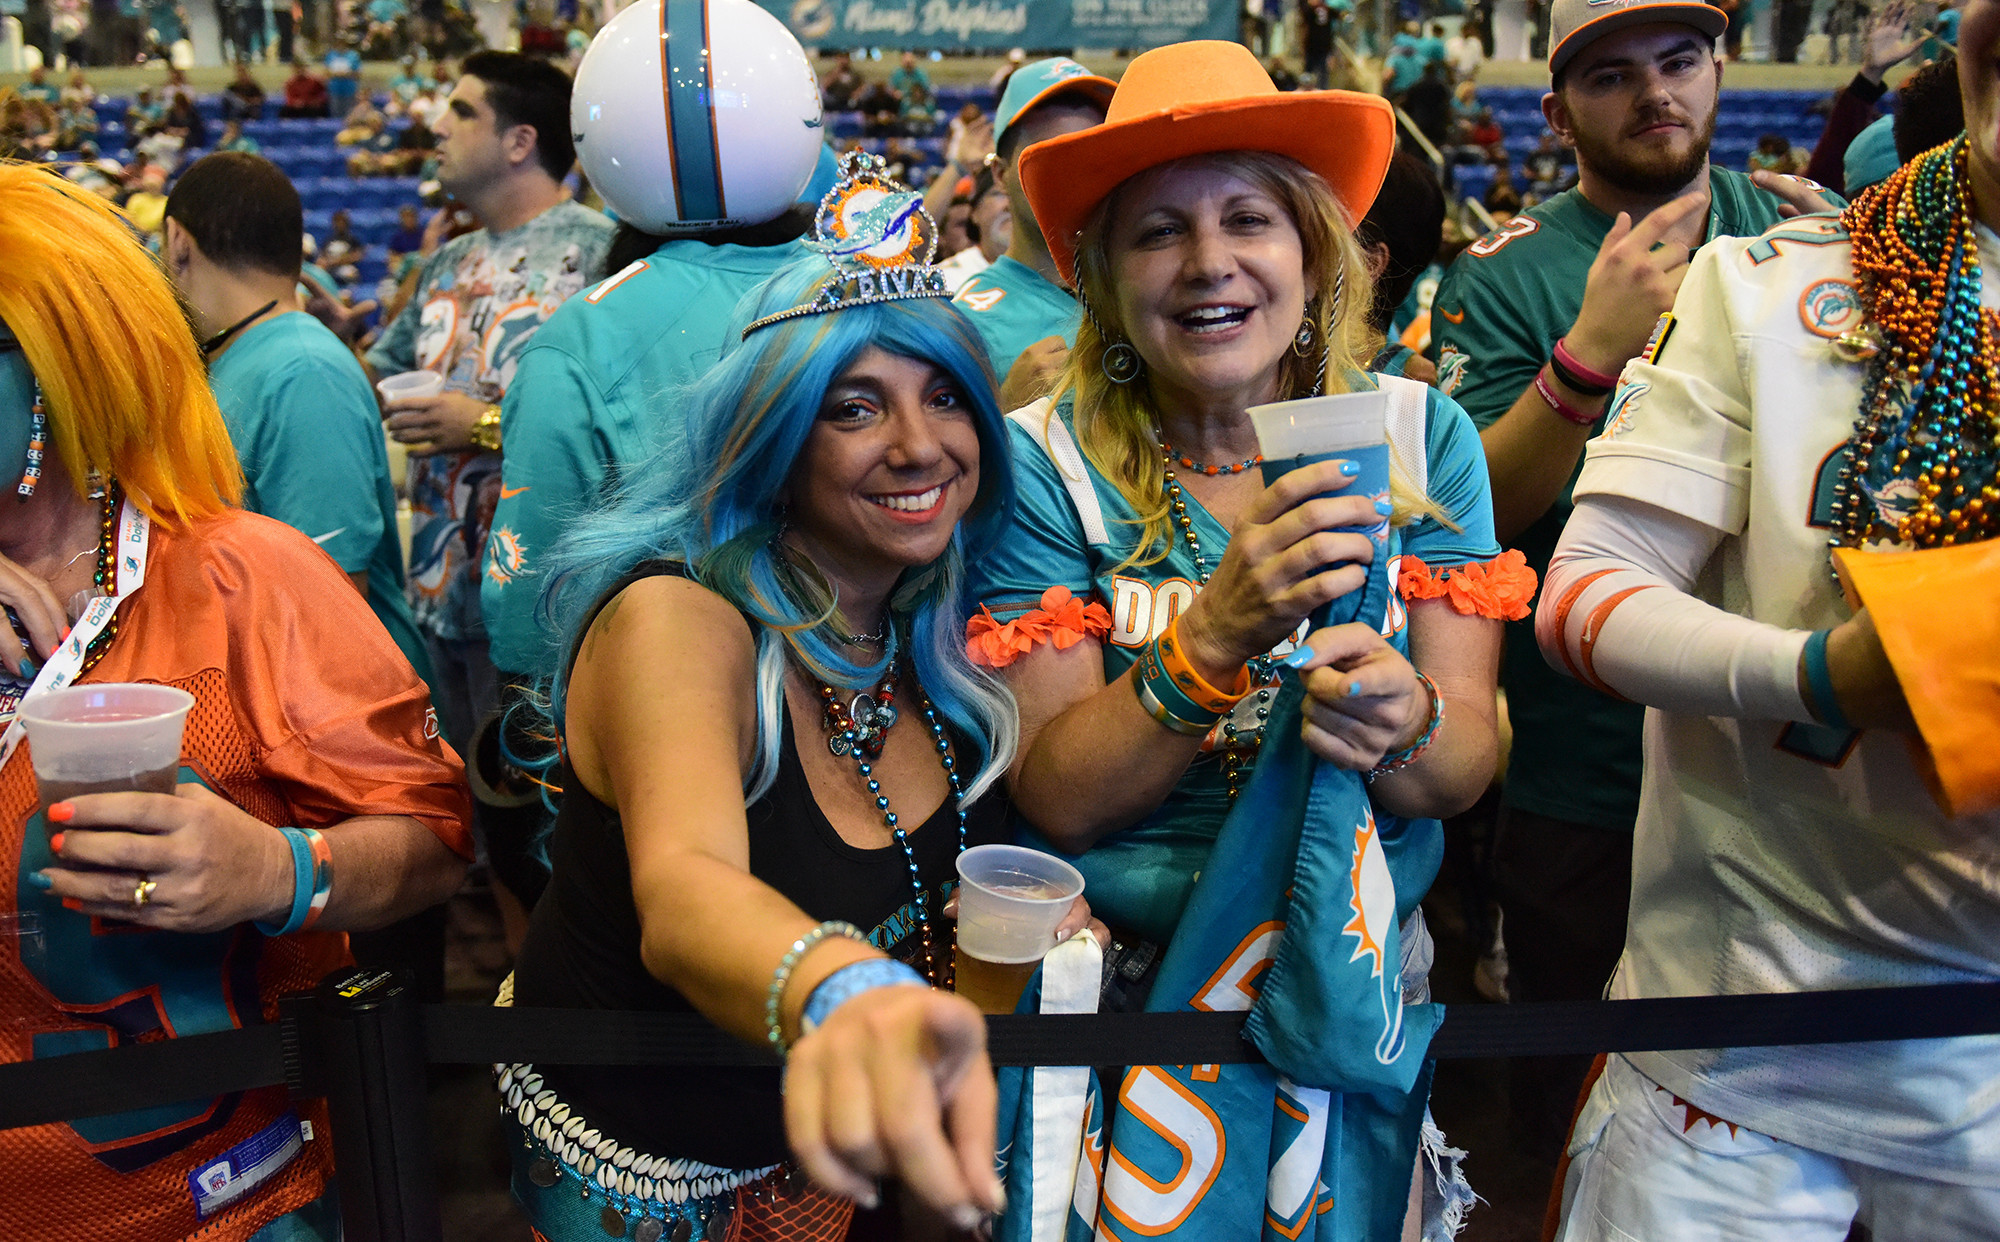 Sfl-dolphins-draft-party-20160428